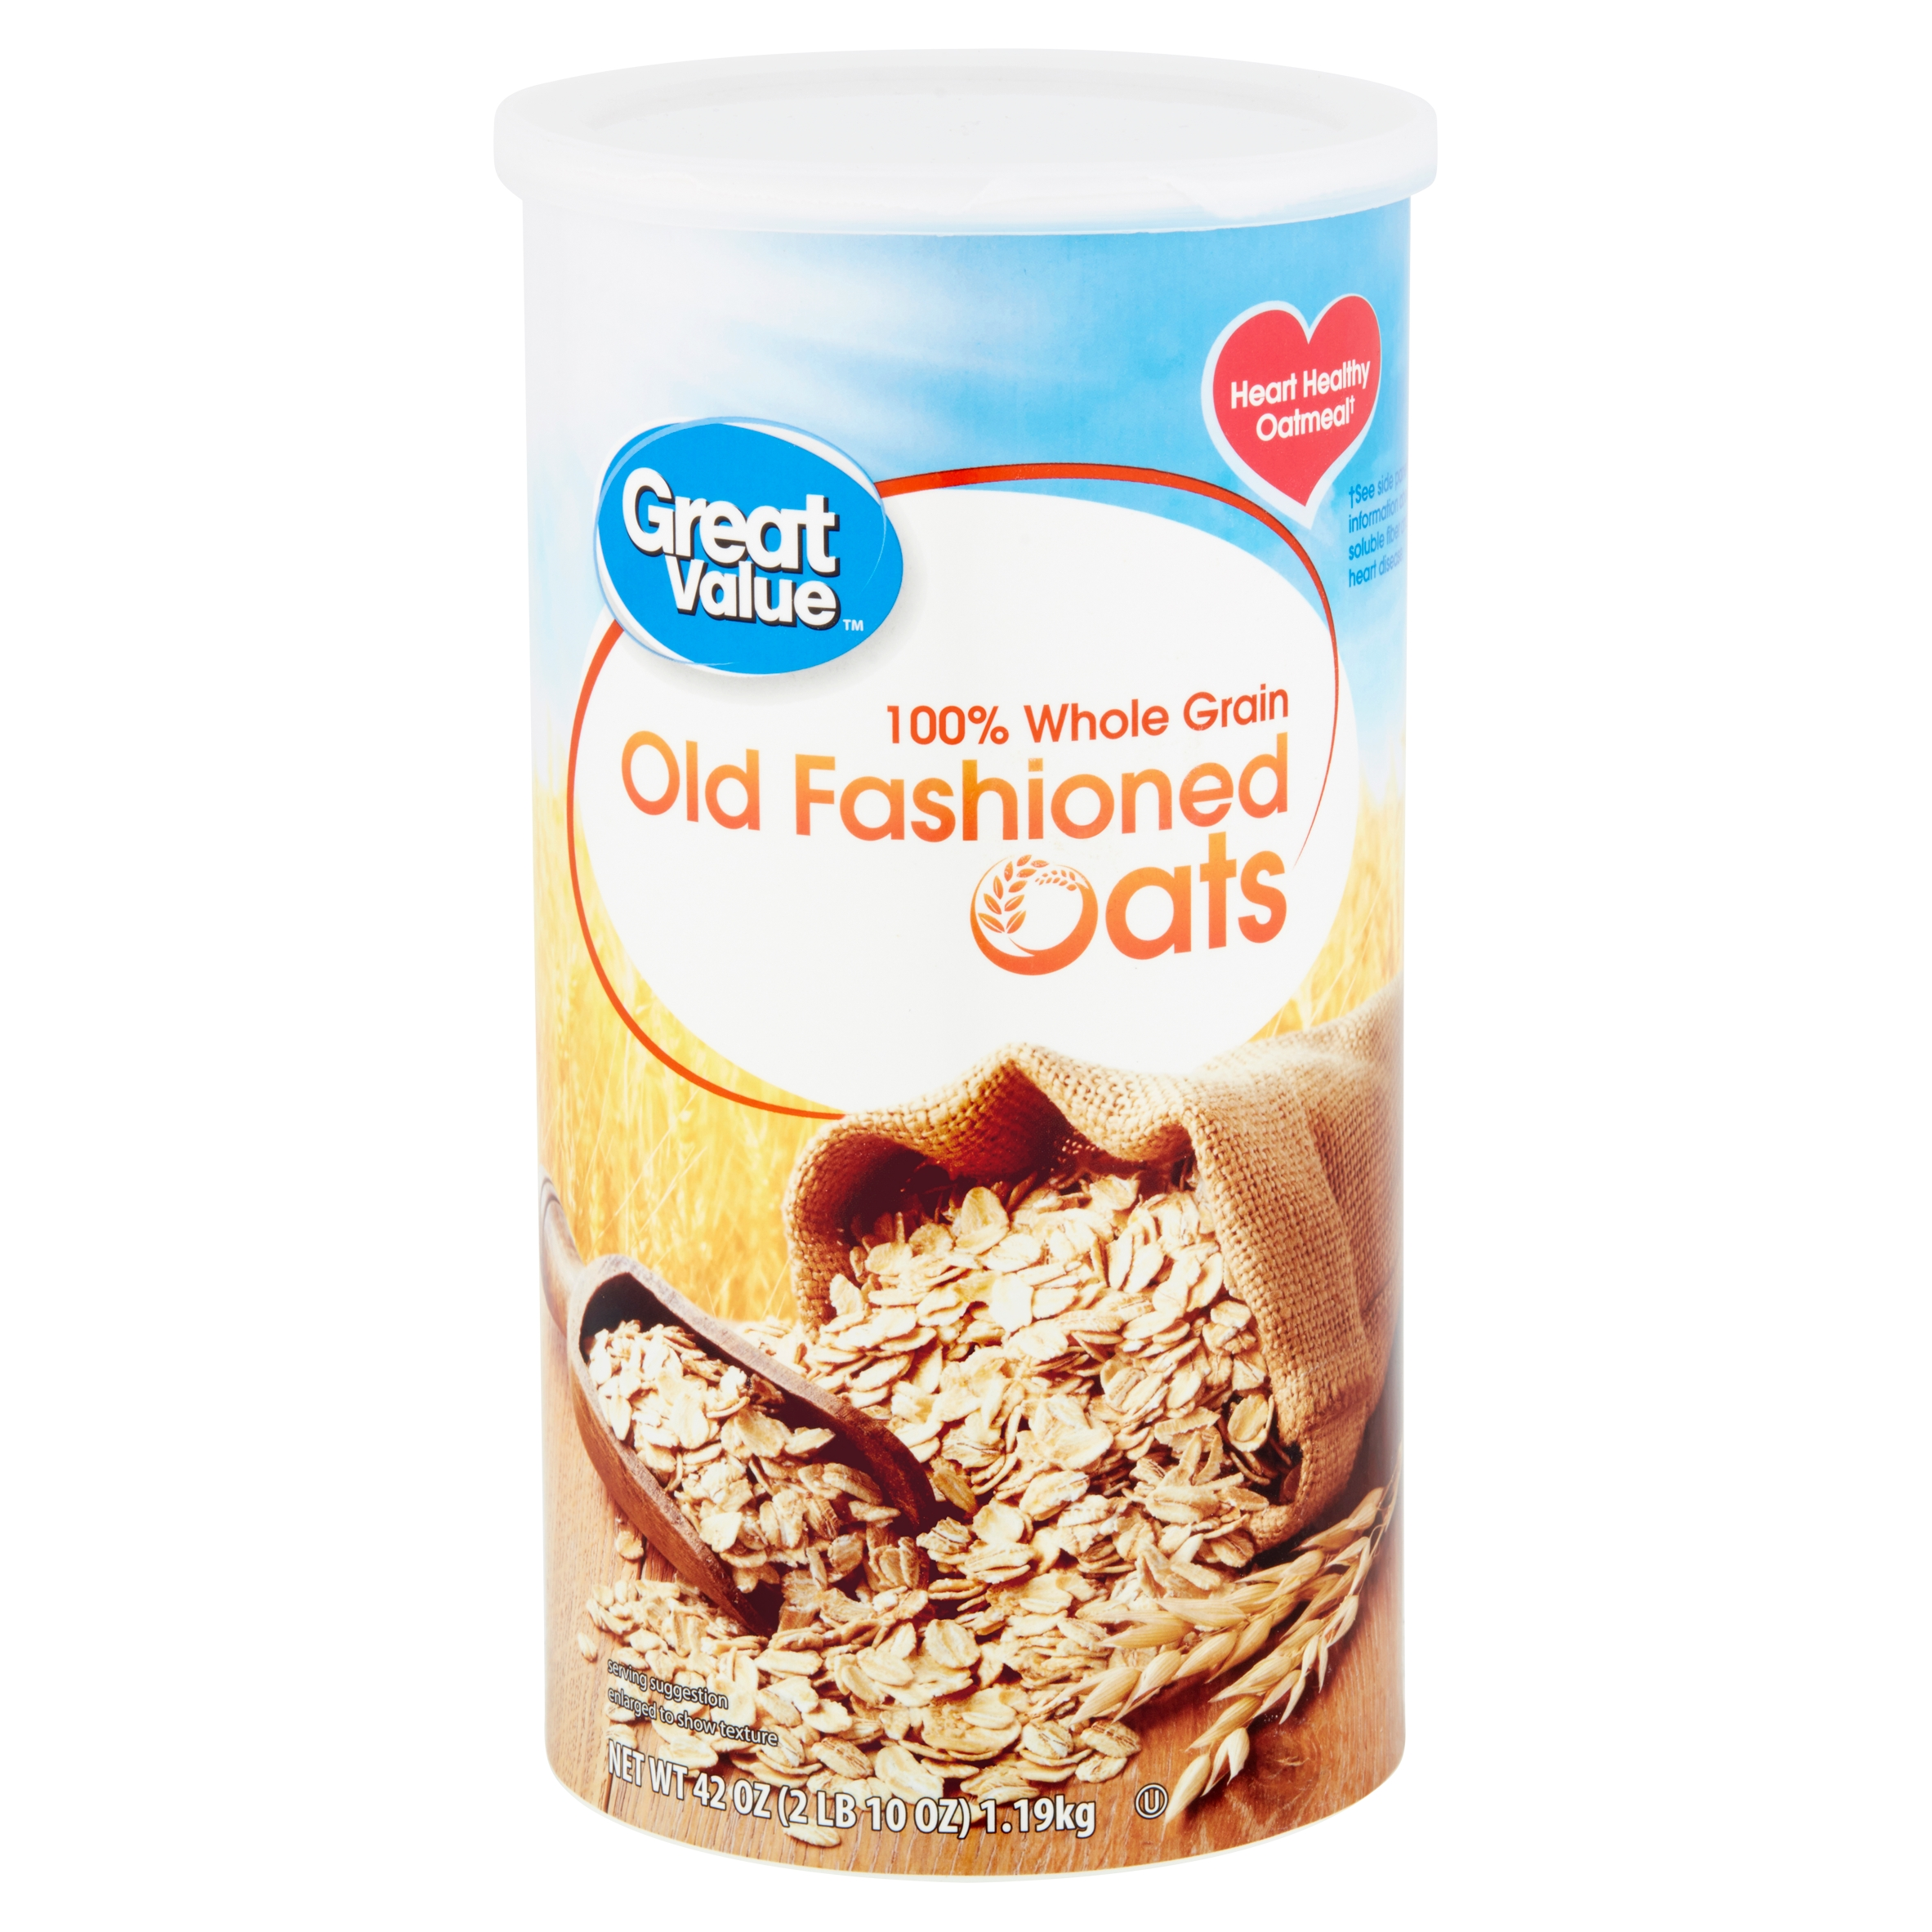 Great Value Old Fashioned Oats, 42 oz